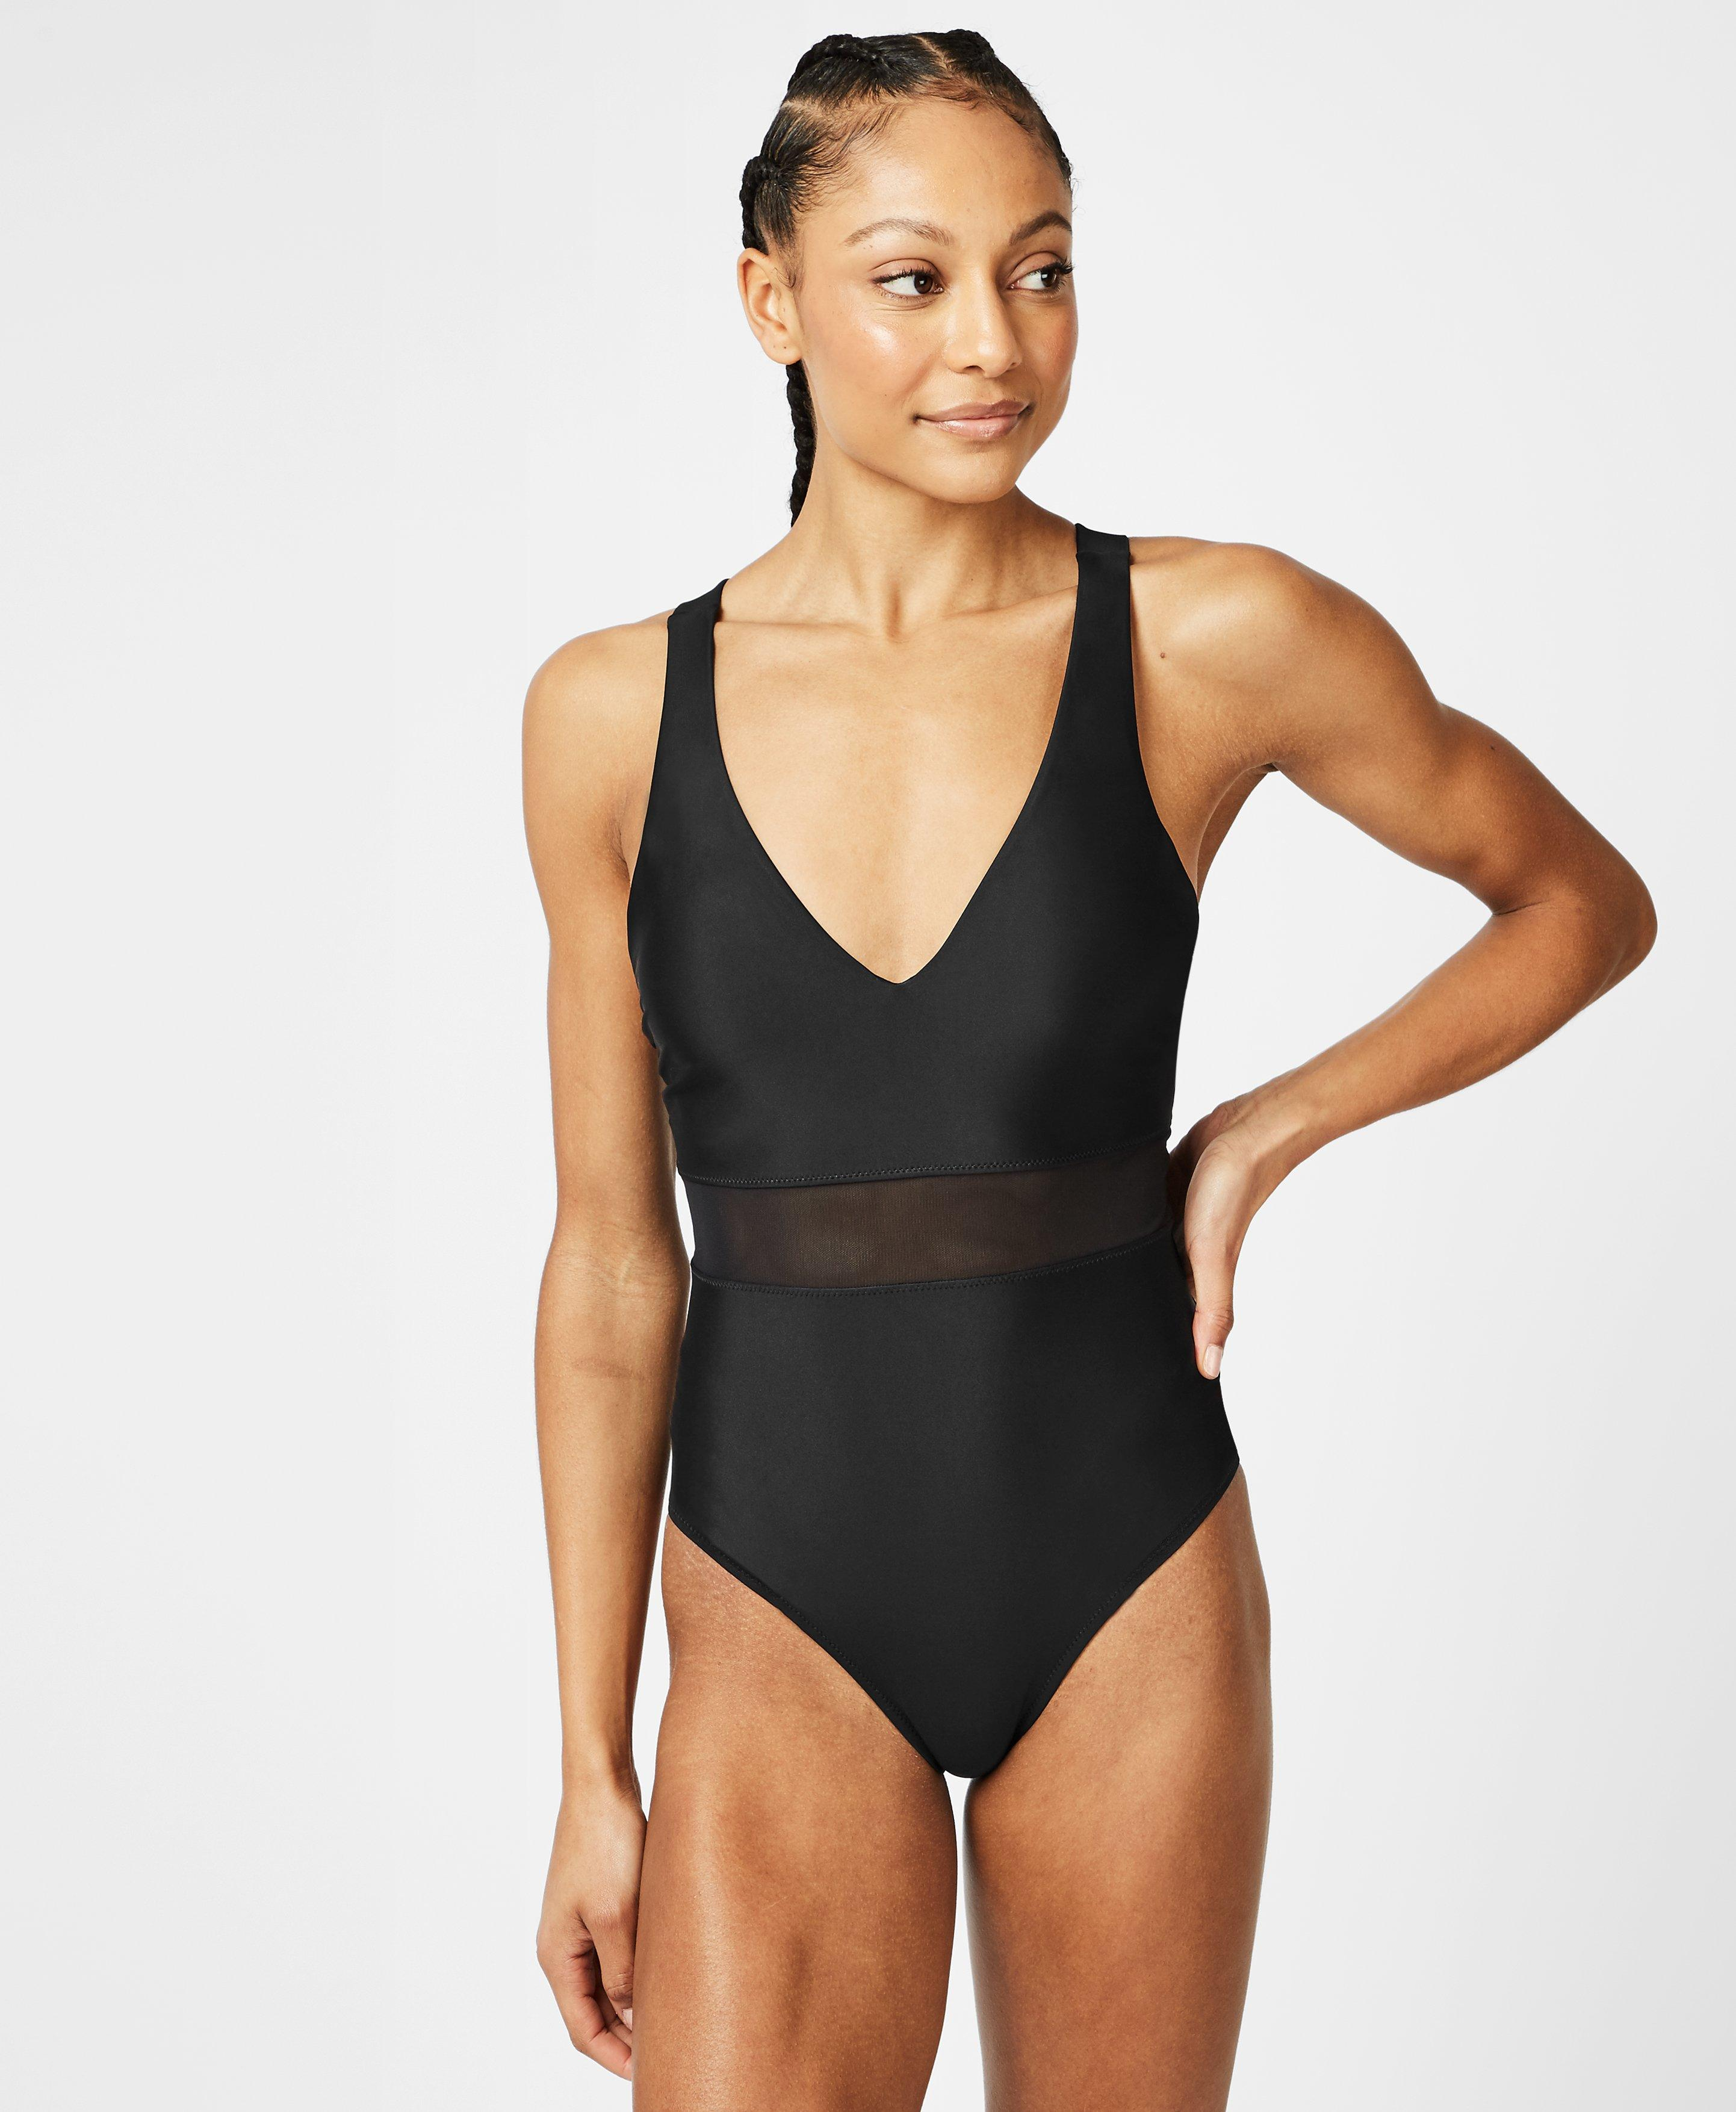 Statement one piece made from ECONYL & reg regenerated nylon produced entirely from recovered fishnets and other nylon waste. A sleek beach style with a flattering nipped in waist with mesh panels and low V neck.